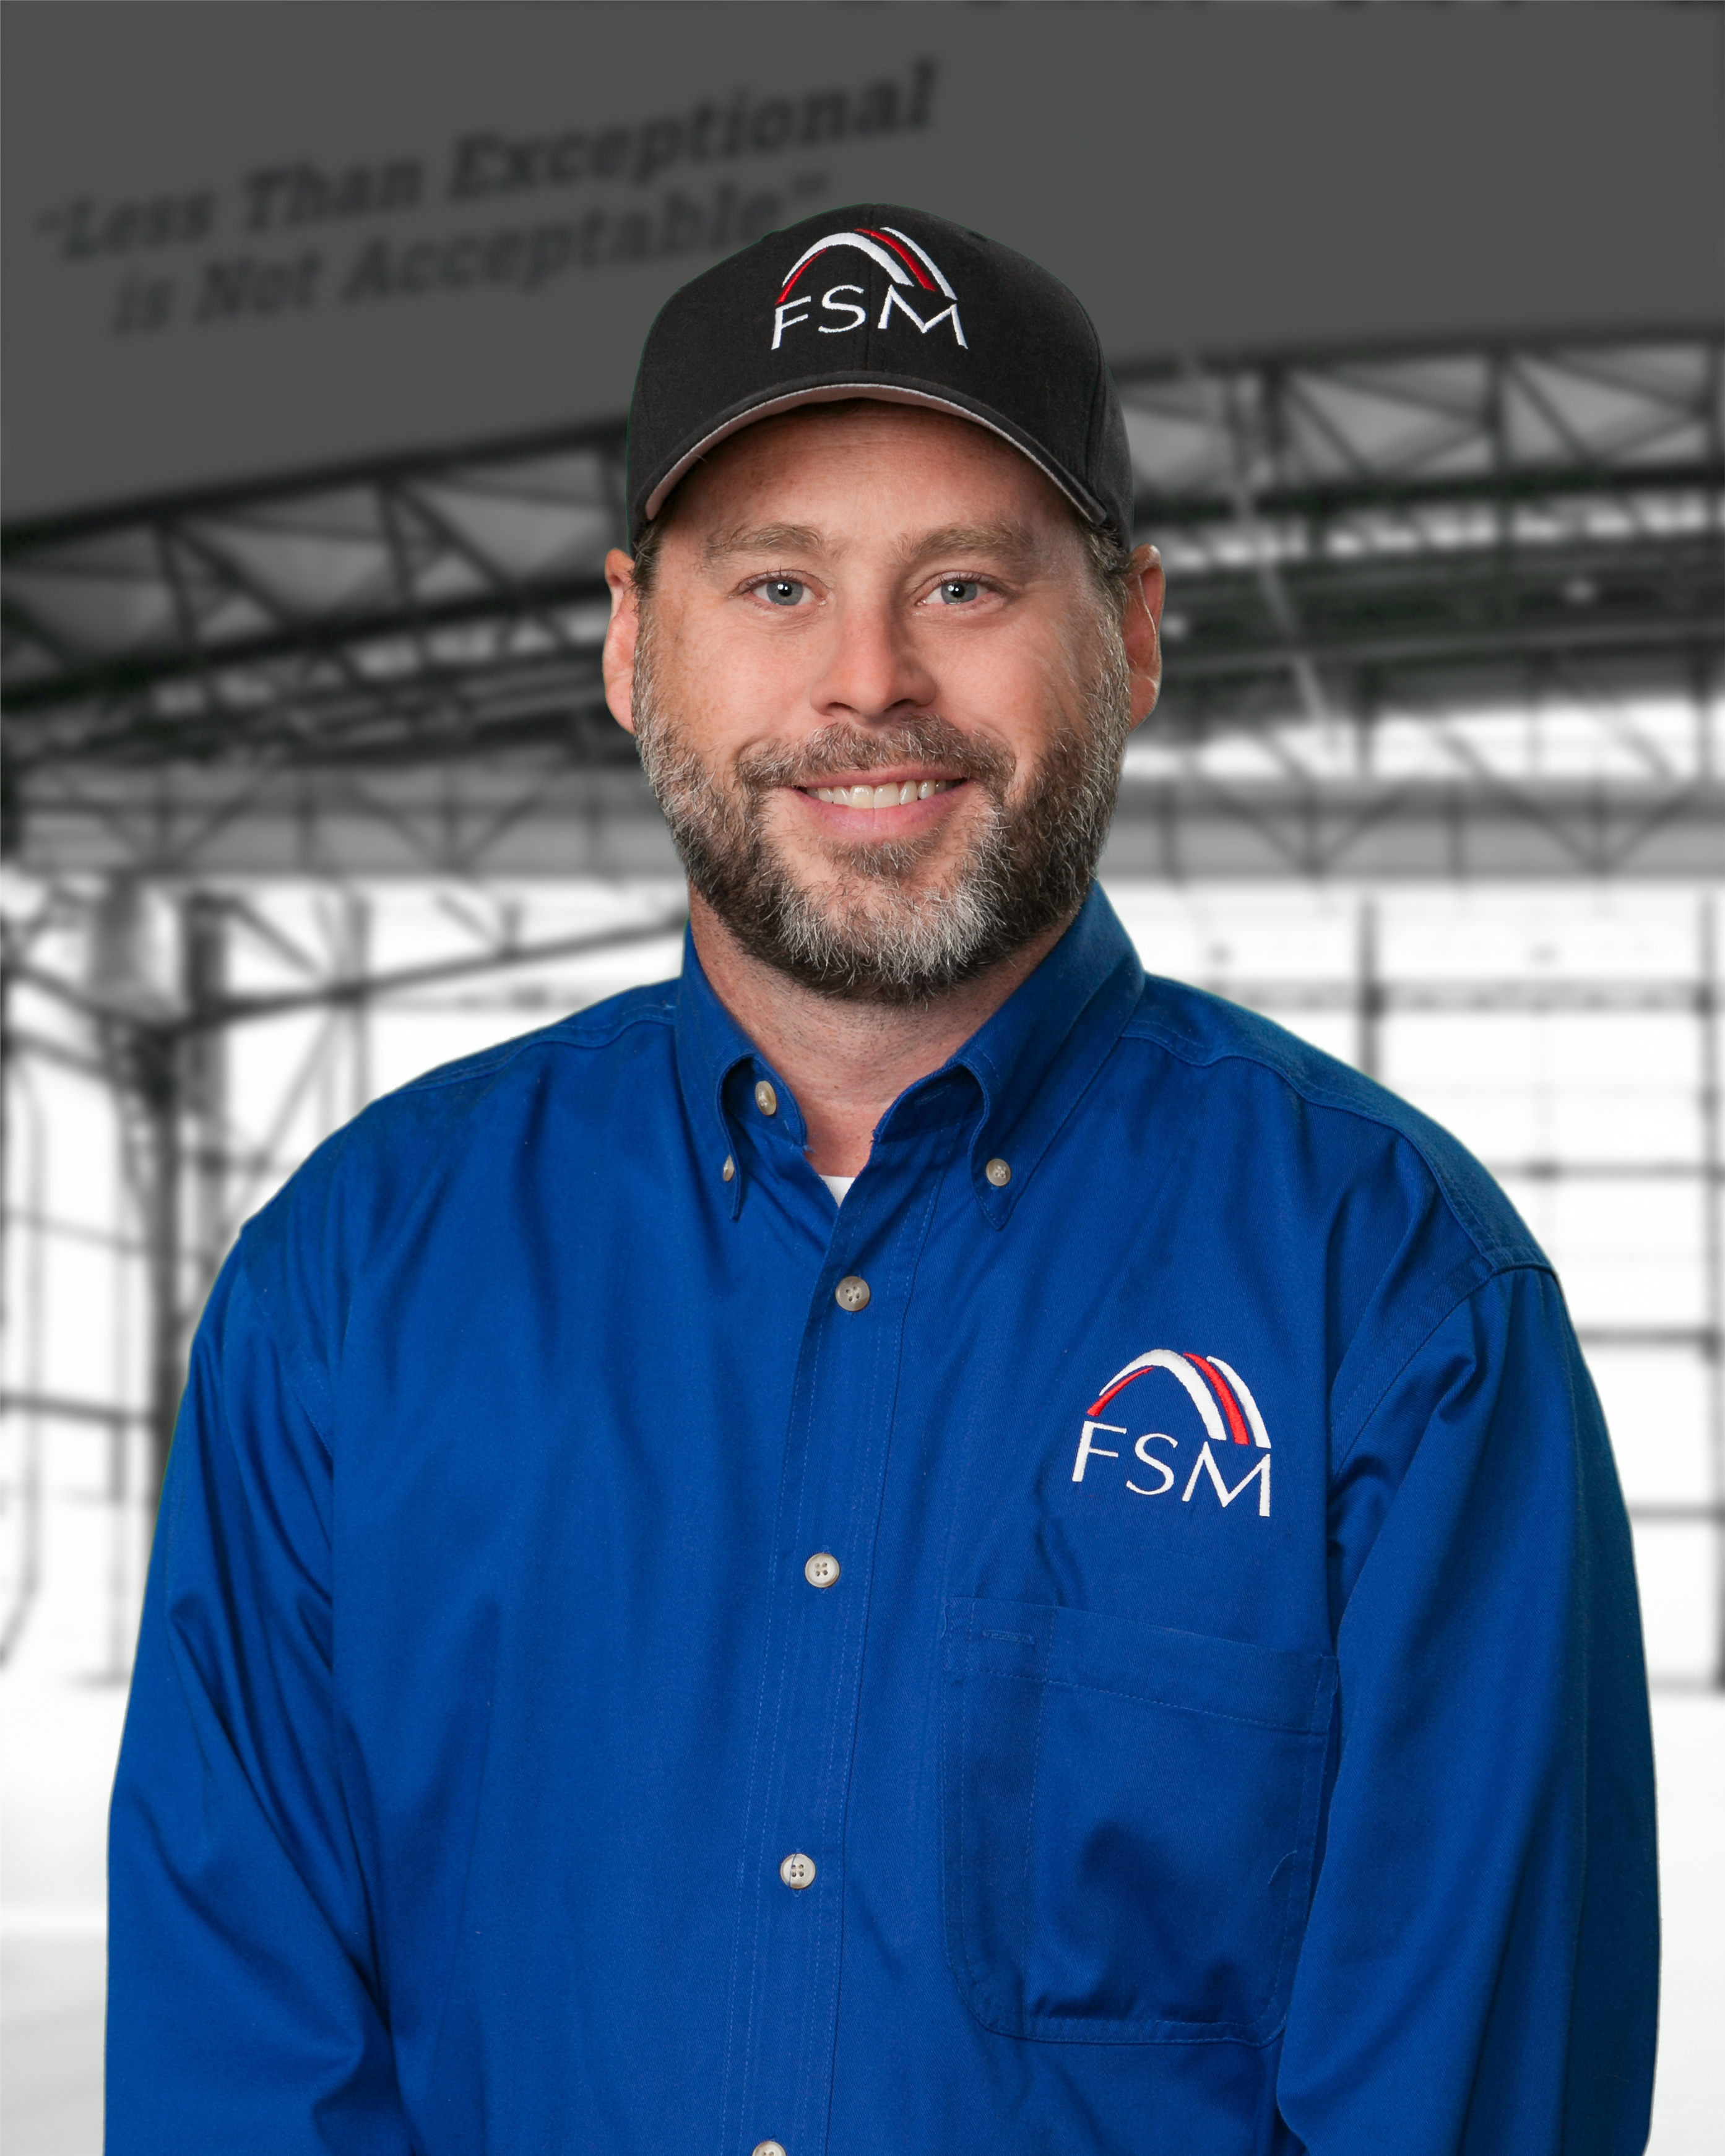 FSM Dale King Assistant Inspections Manager